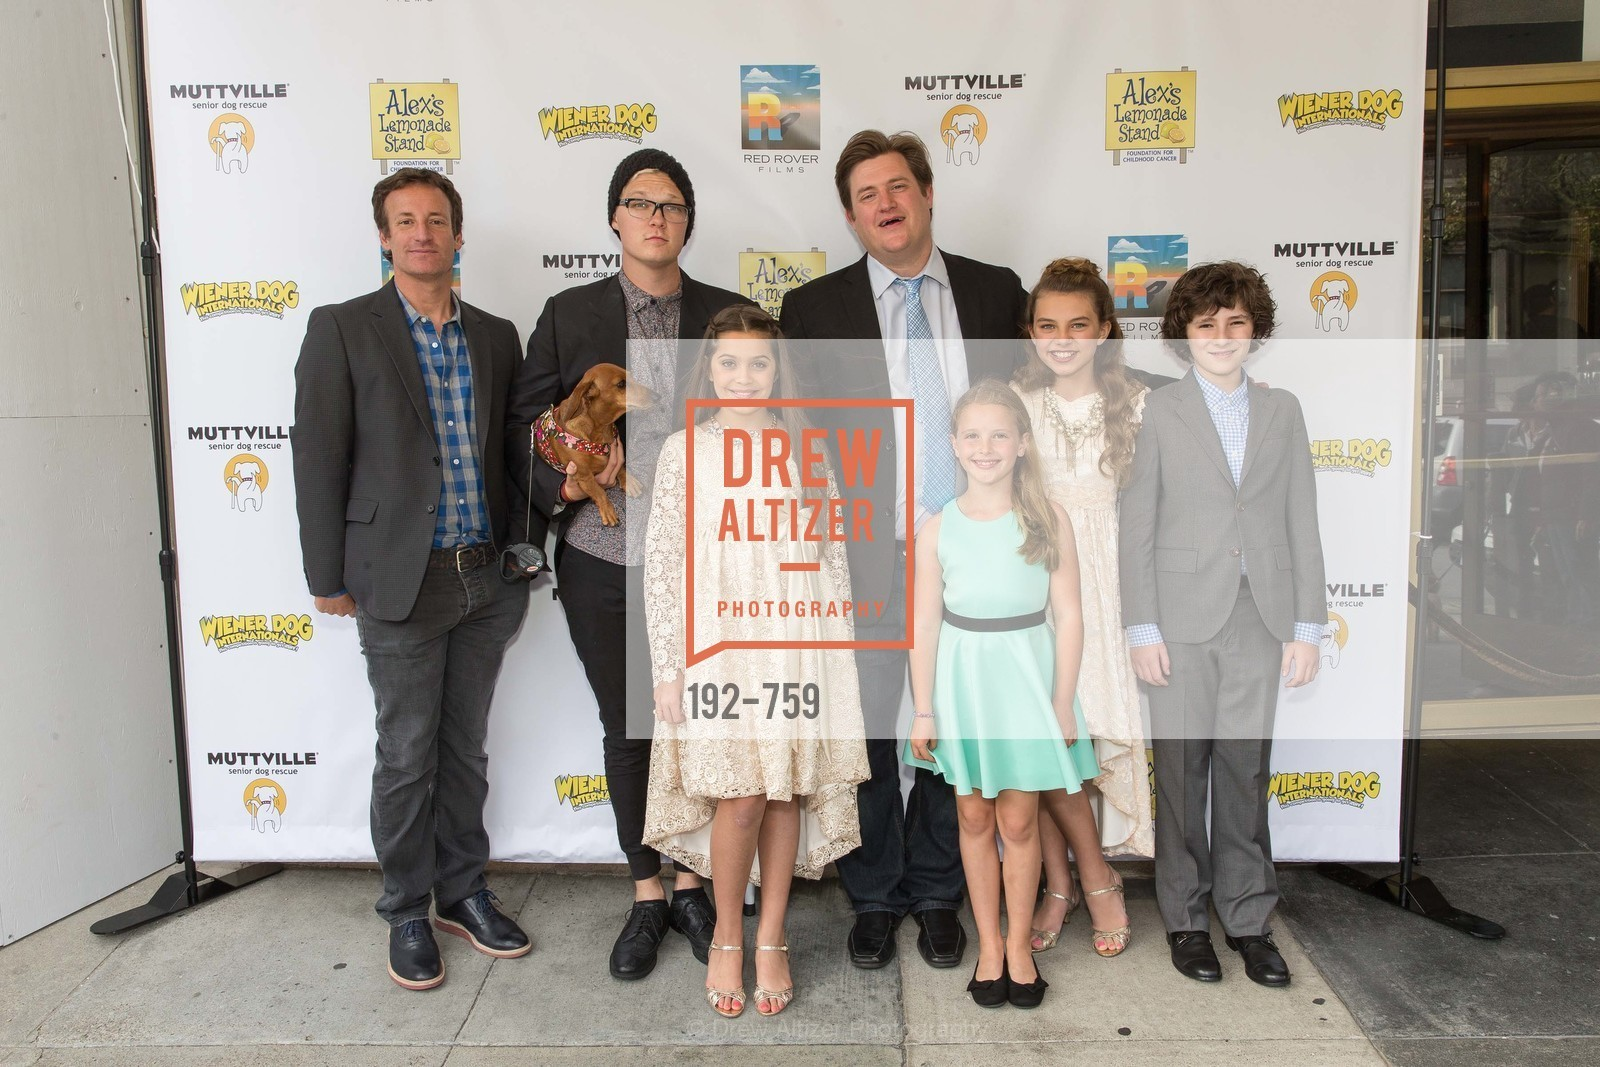 Todd Traina, Austin Anderson, Emmy Perry, Kevan Peterson, Daisy Traina, Caitlin Carmichael, Julian Feder, WEINER DOG, The Movie, Screening, US, May 31st, 2015,Drew Altizer, Drew Altizer Photography, full-service agency, private events, San Francisco photographer, photographer california